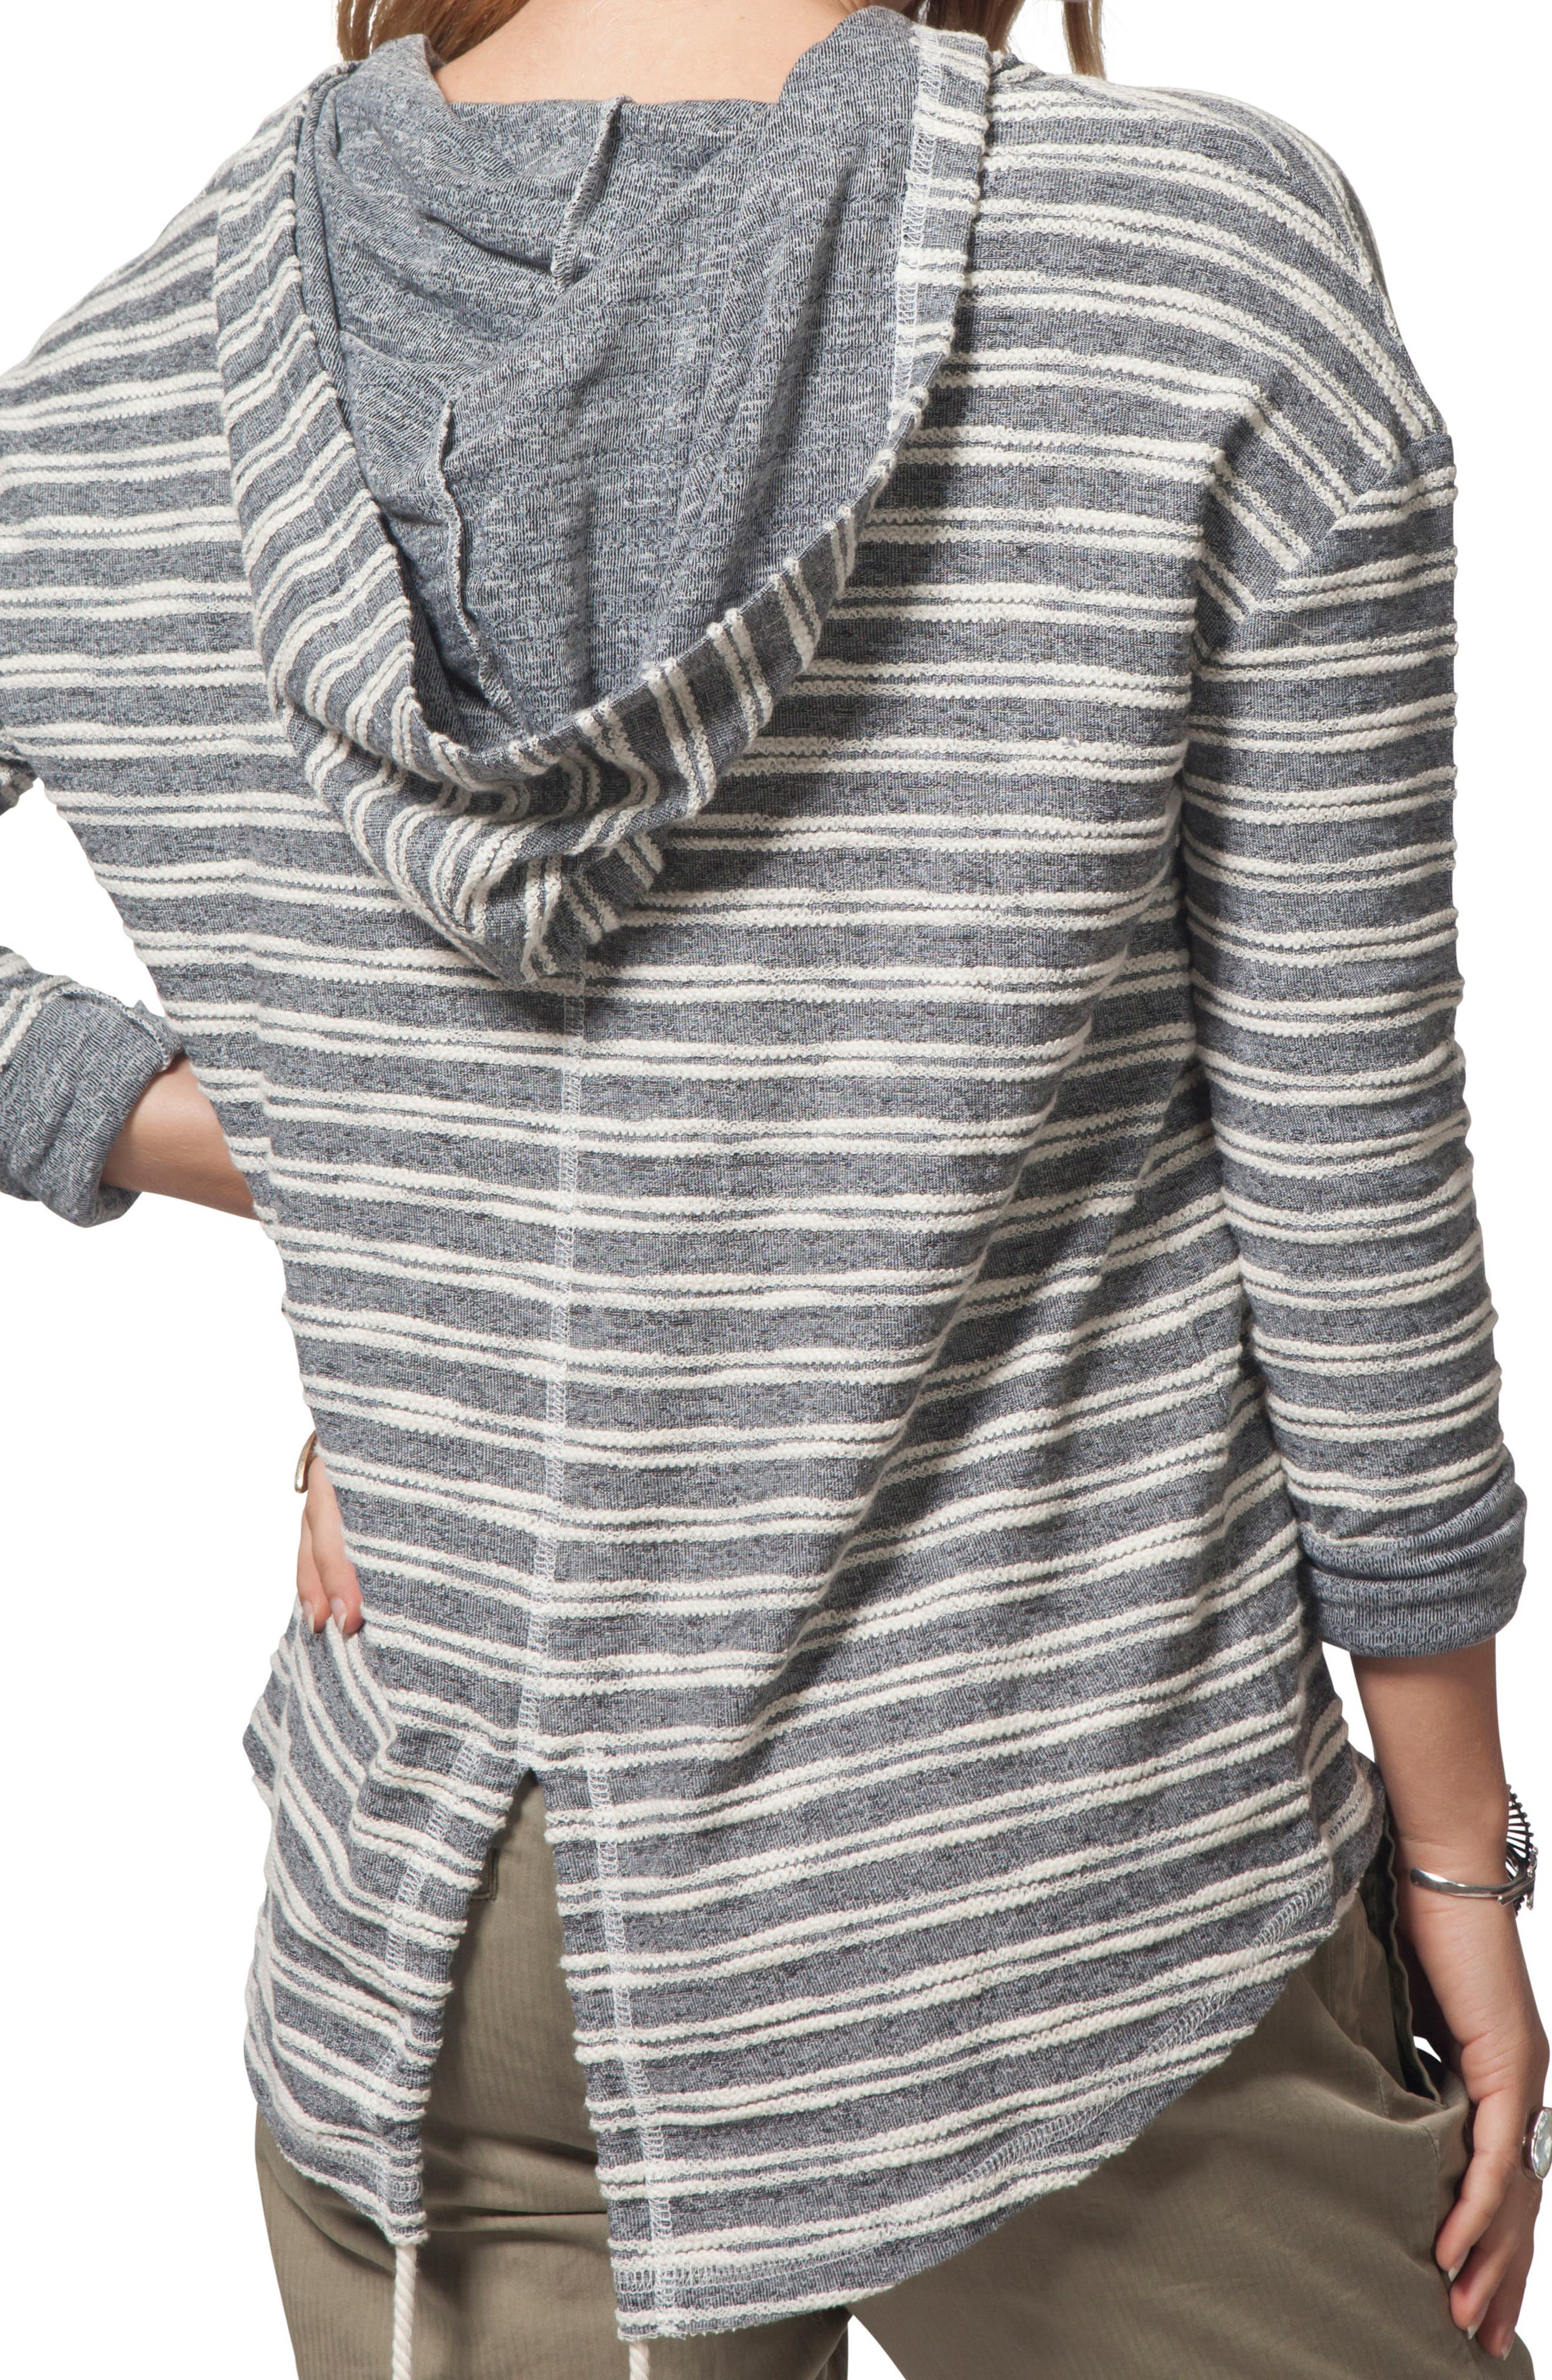 Next Move Stripe Hooded Pullover,                             Alternate thumbnail 3, color,                             001